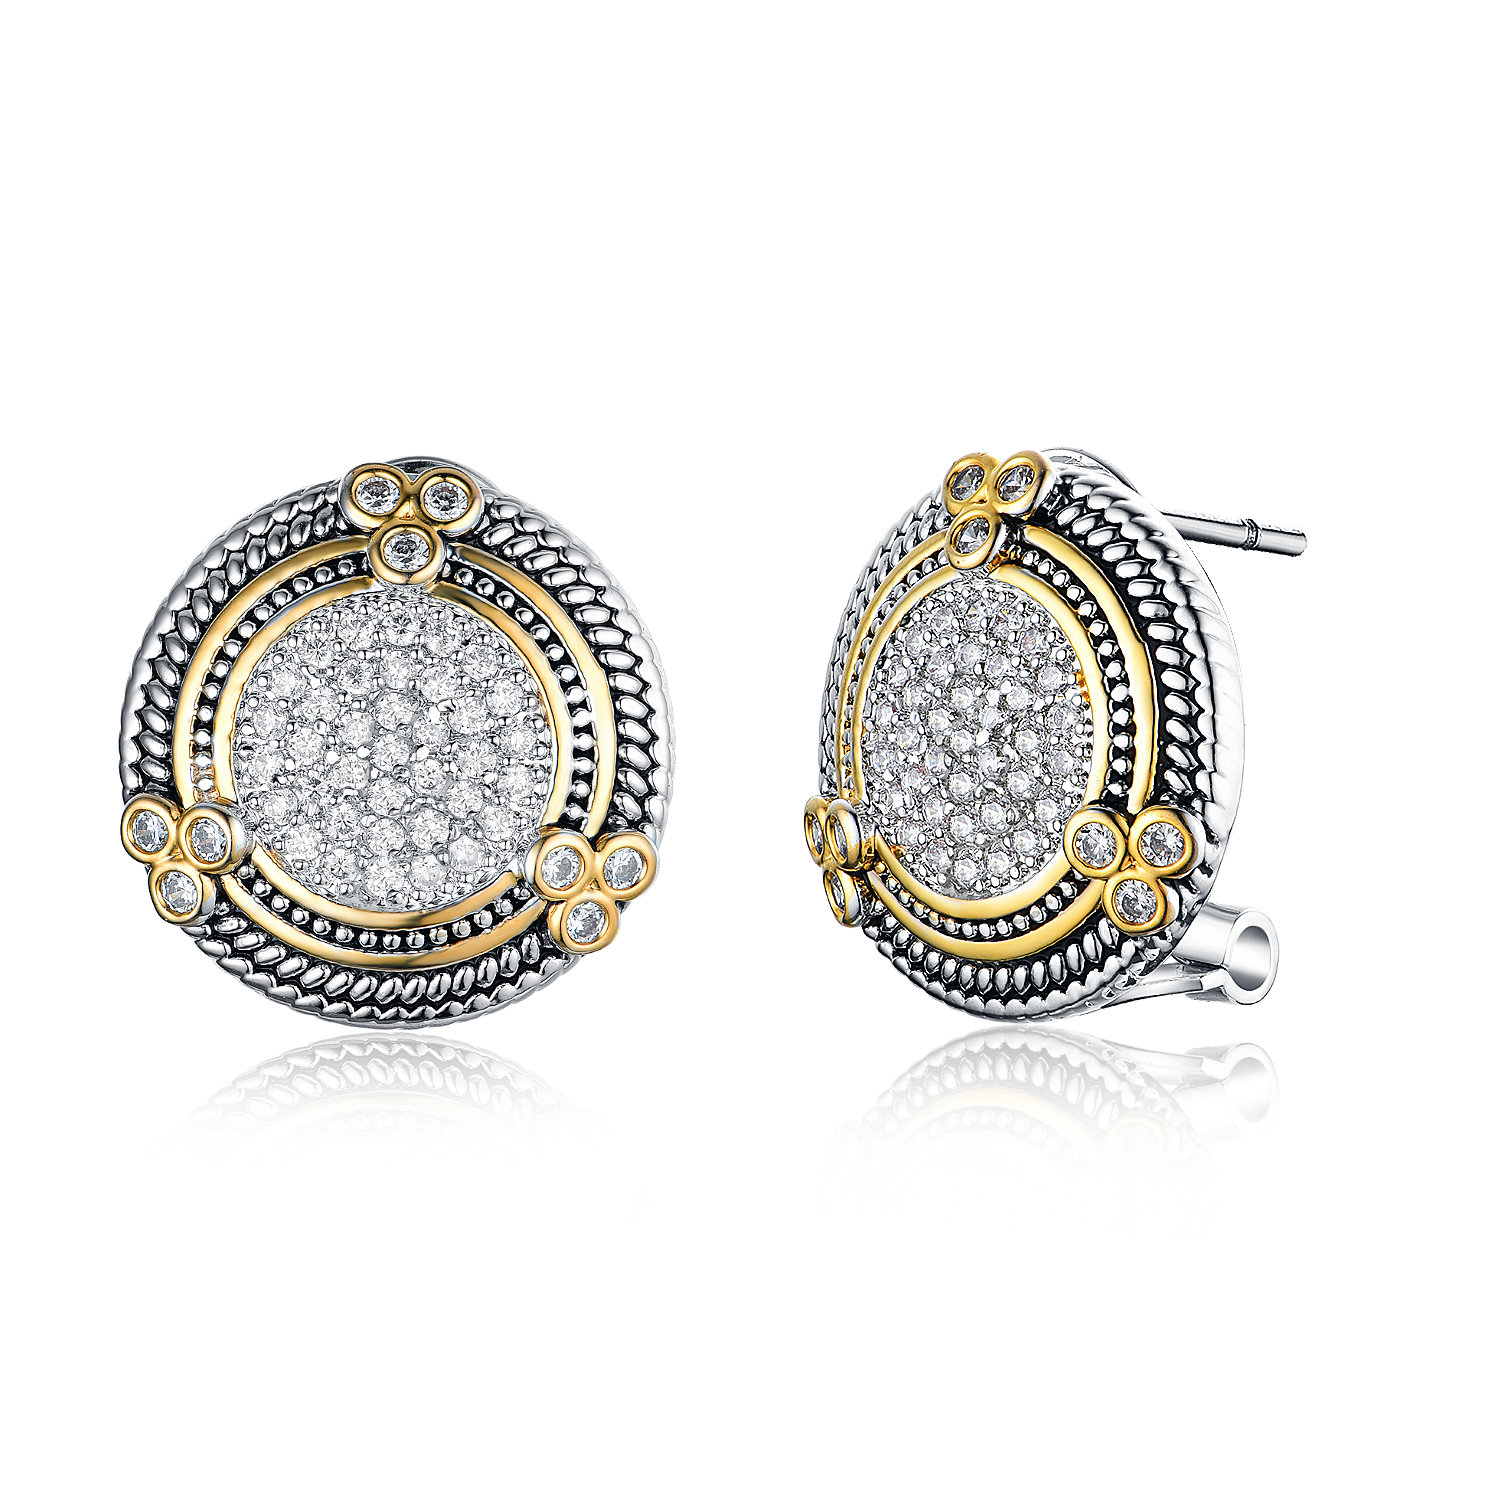 ST2765E-Designer inspired Cable texture Two-tone Round Earring with White CZ in center in brass from China reliable jewelry factory